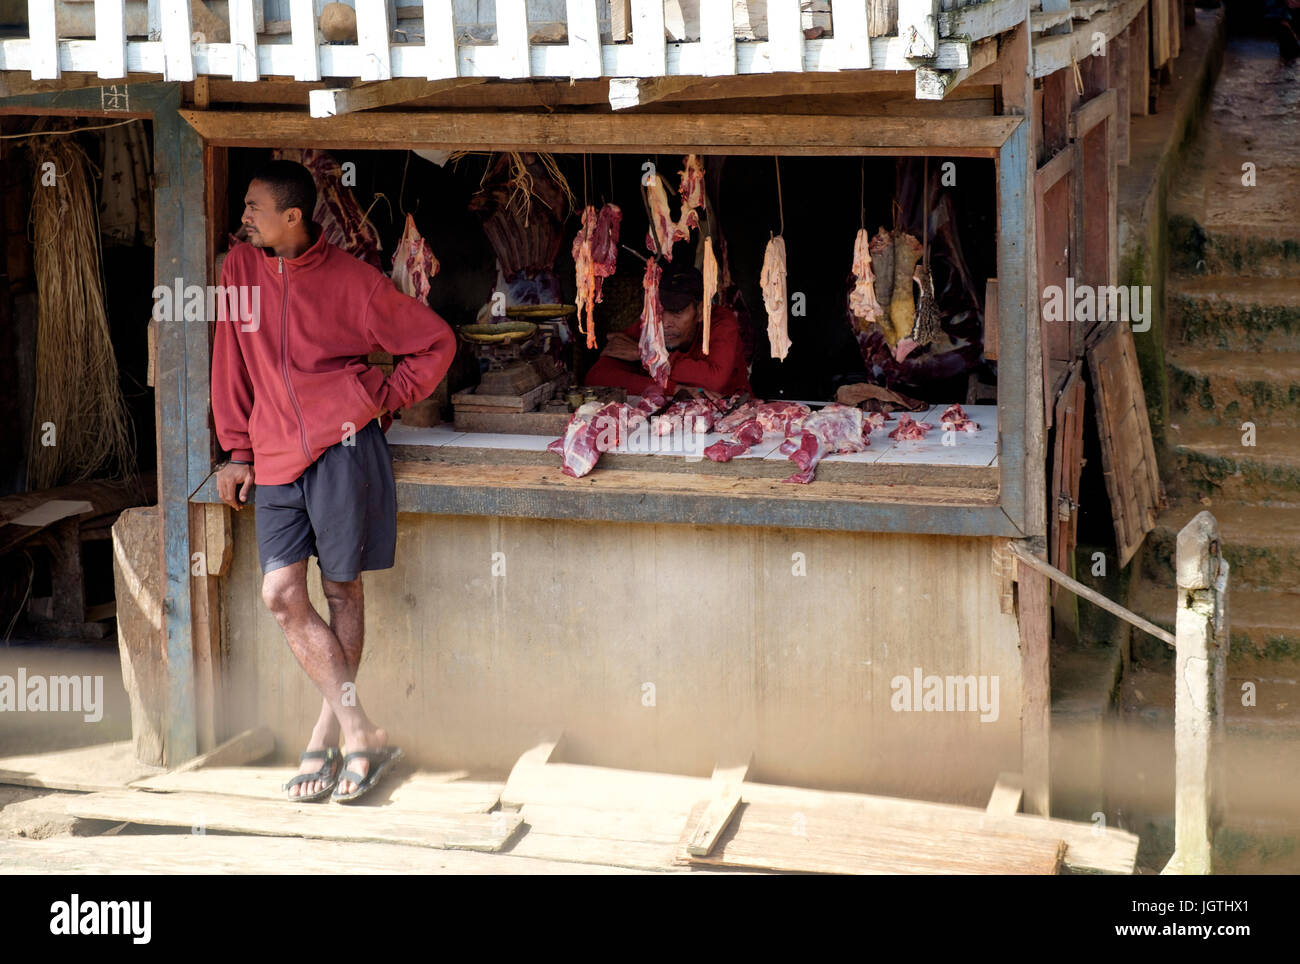 A trackside butcher waits to sell at one of the stations along the Fianarantsoa-Côte Est railway in Madagascar. - Stock Image